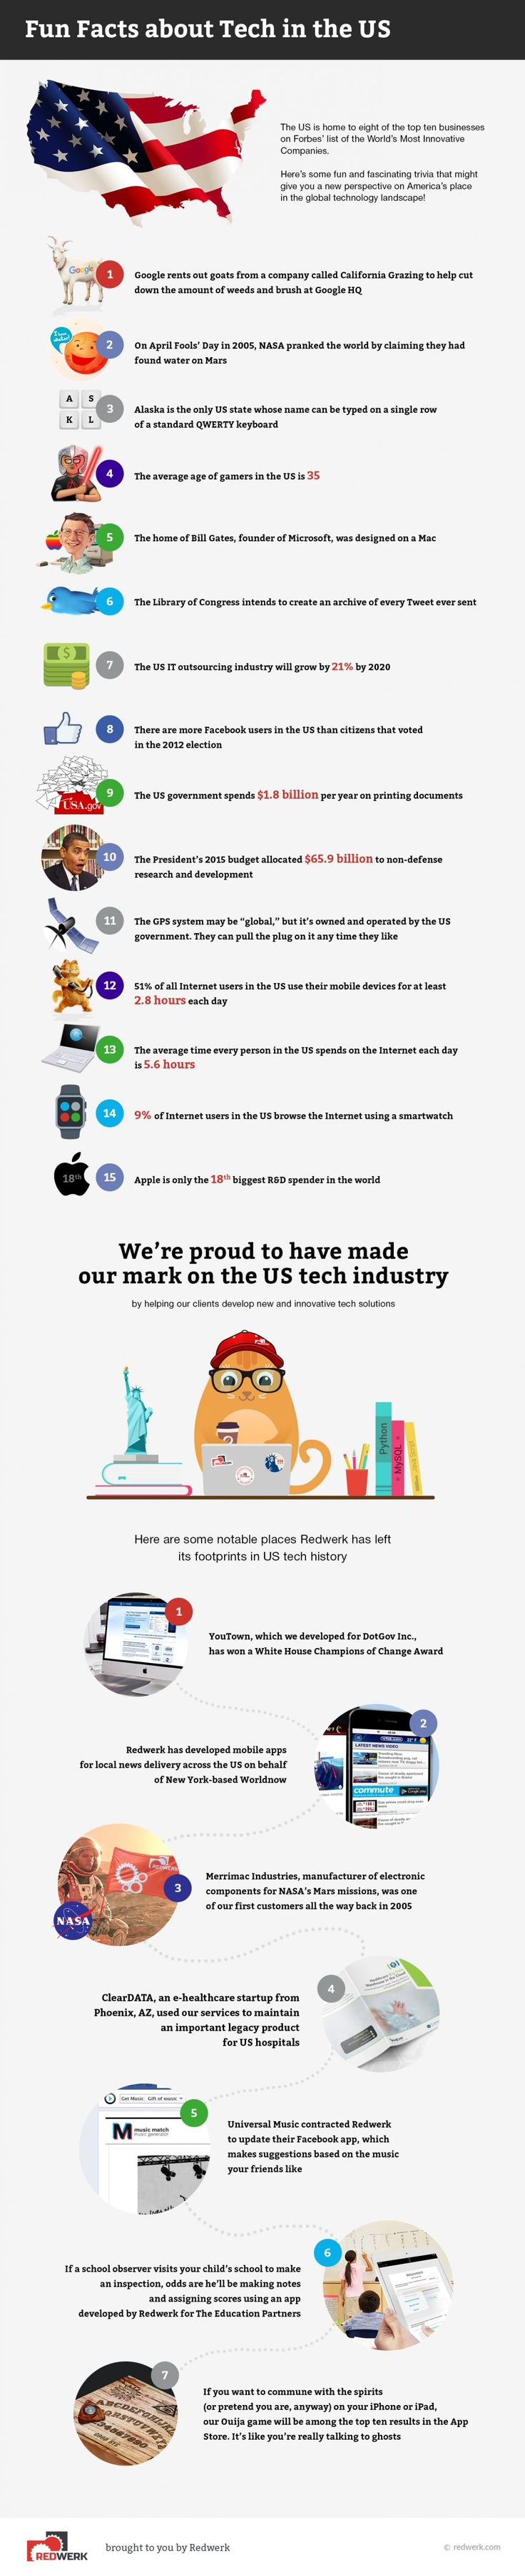 Interesting Facts about the USA Tech Industry Infographic